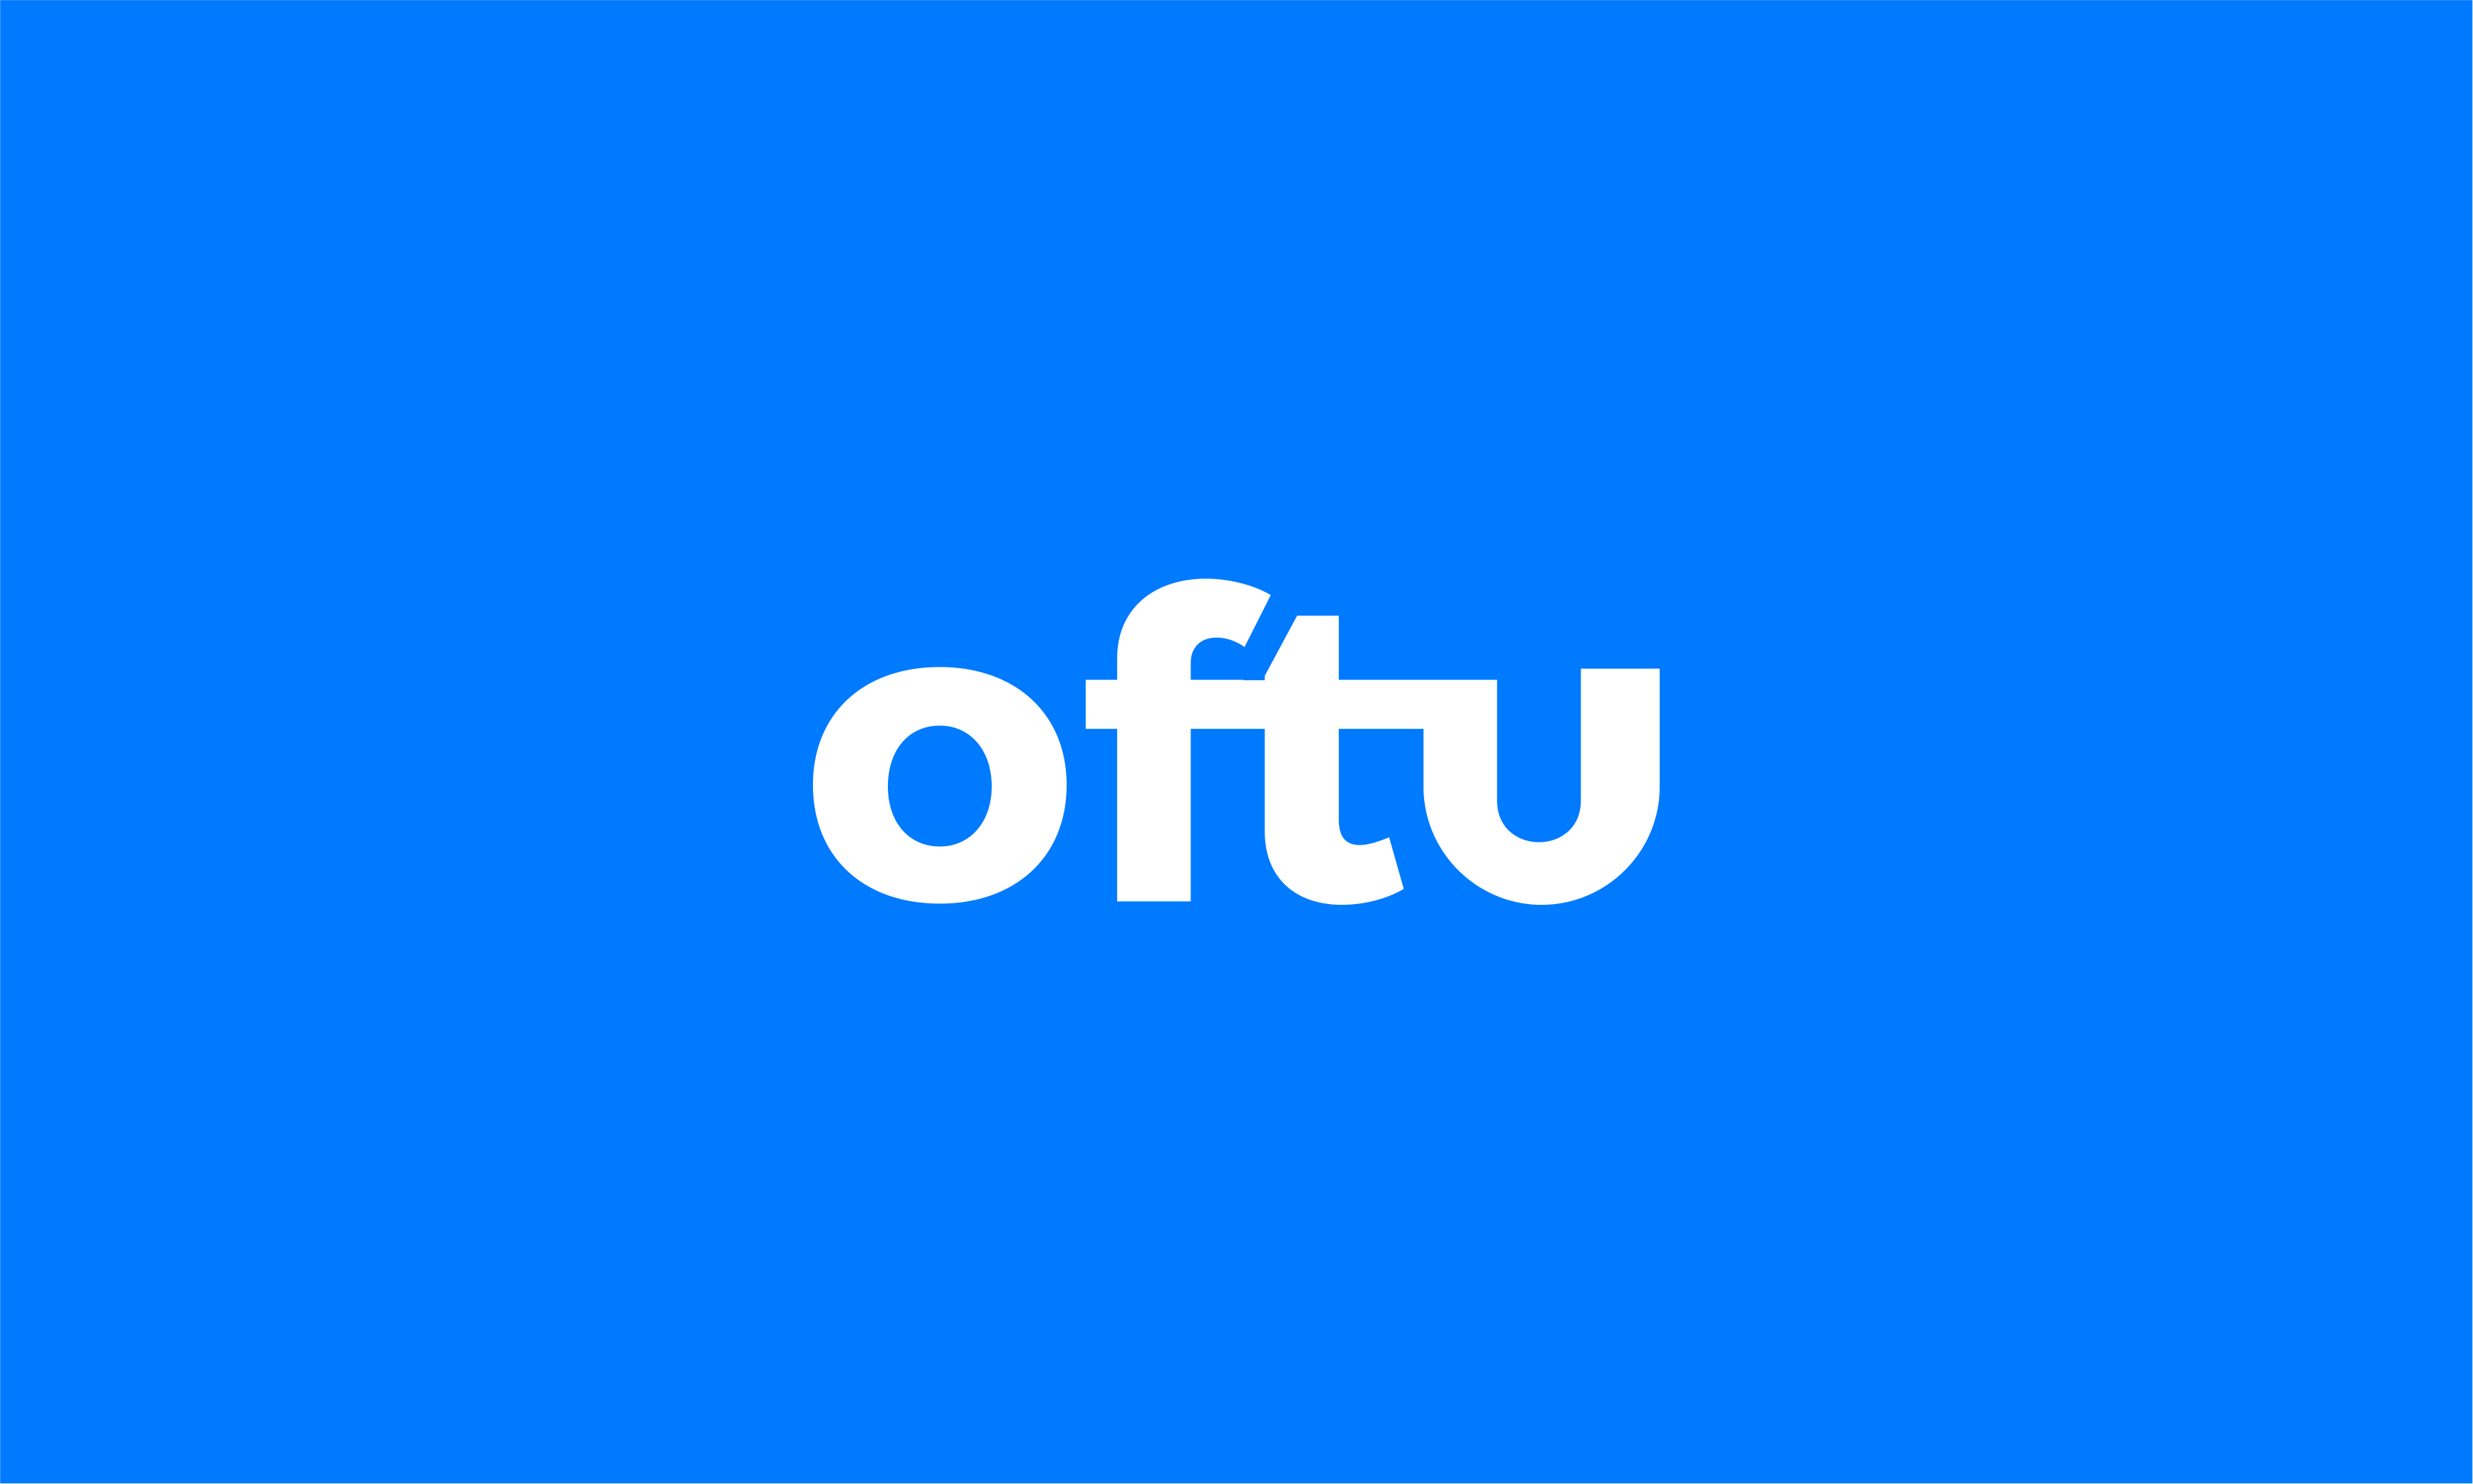 Oftu - Retail company name for sale